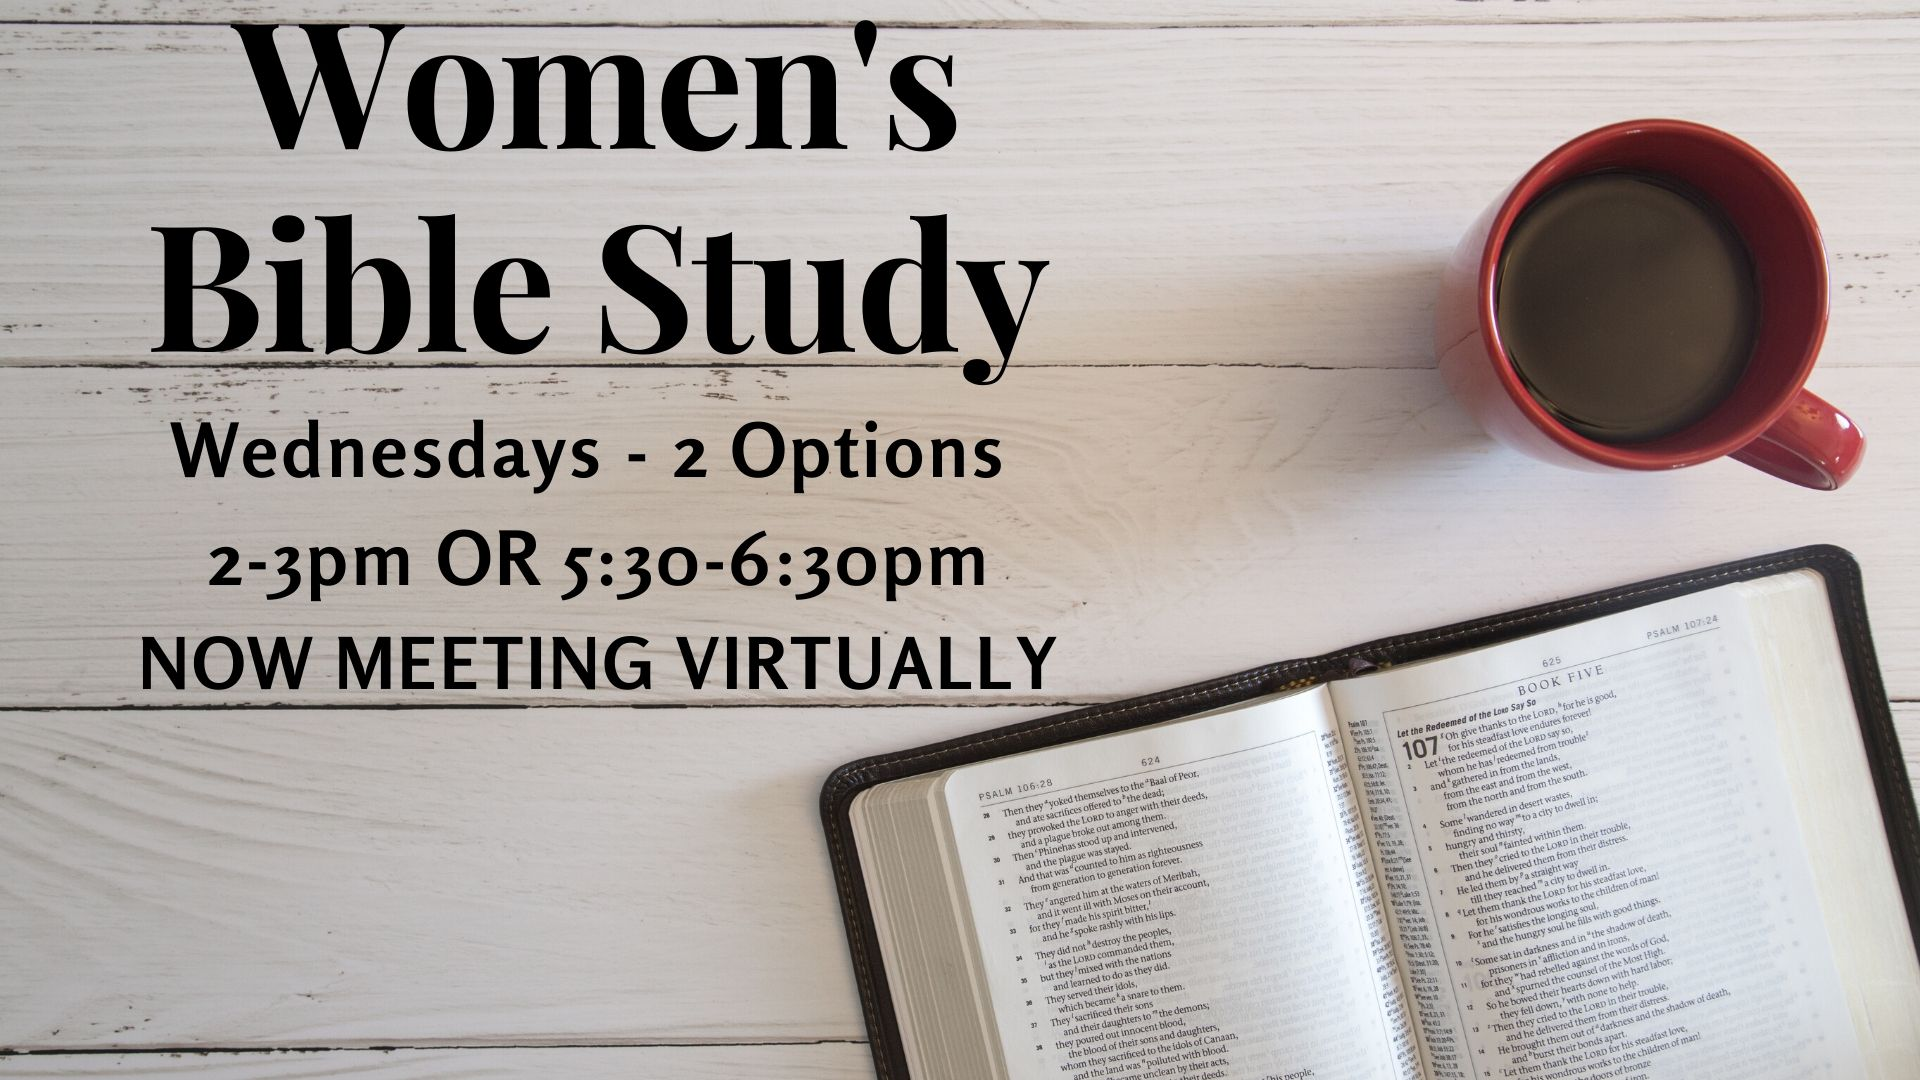 2options Women's Bible Study